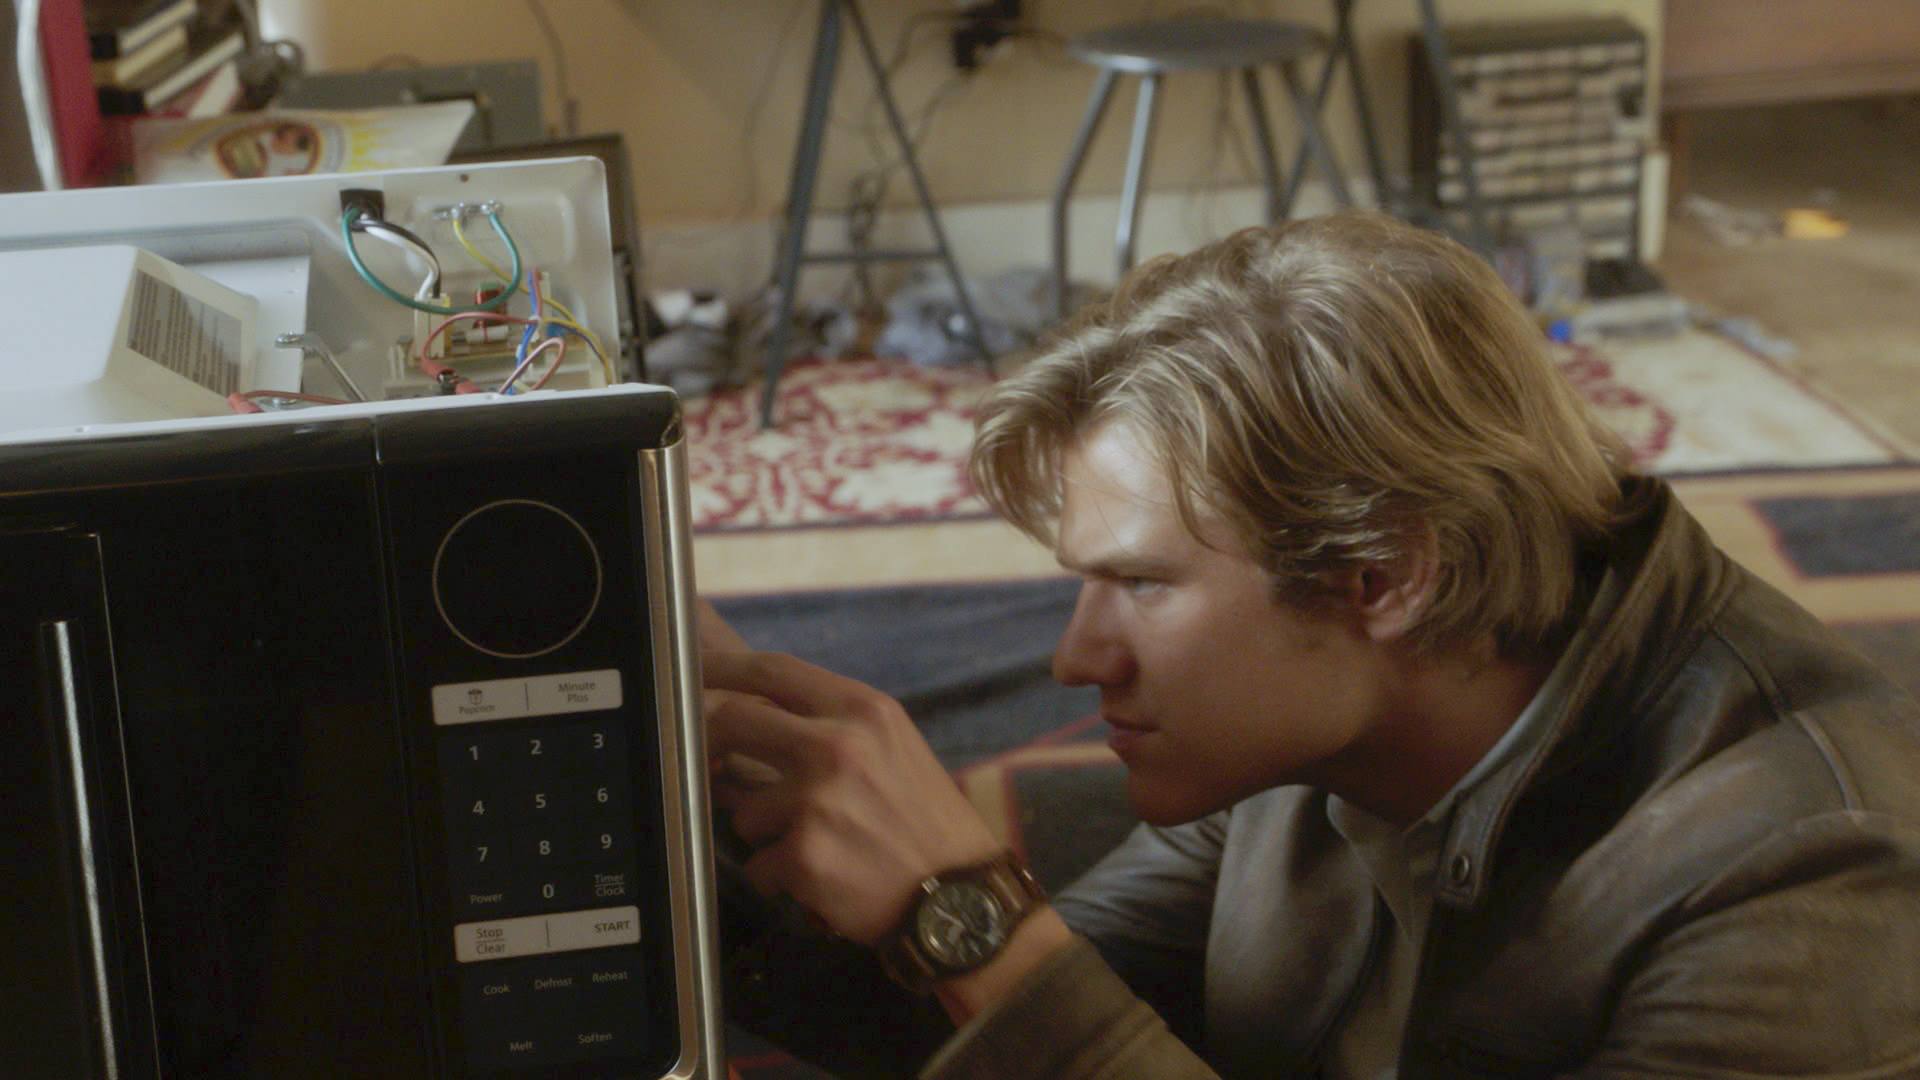 MacGyver dives into a microwave's electronics.